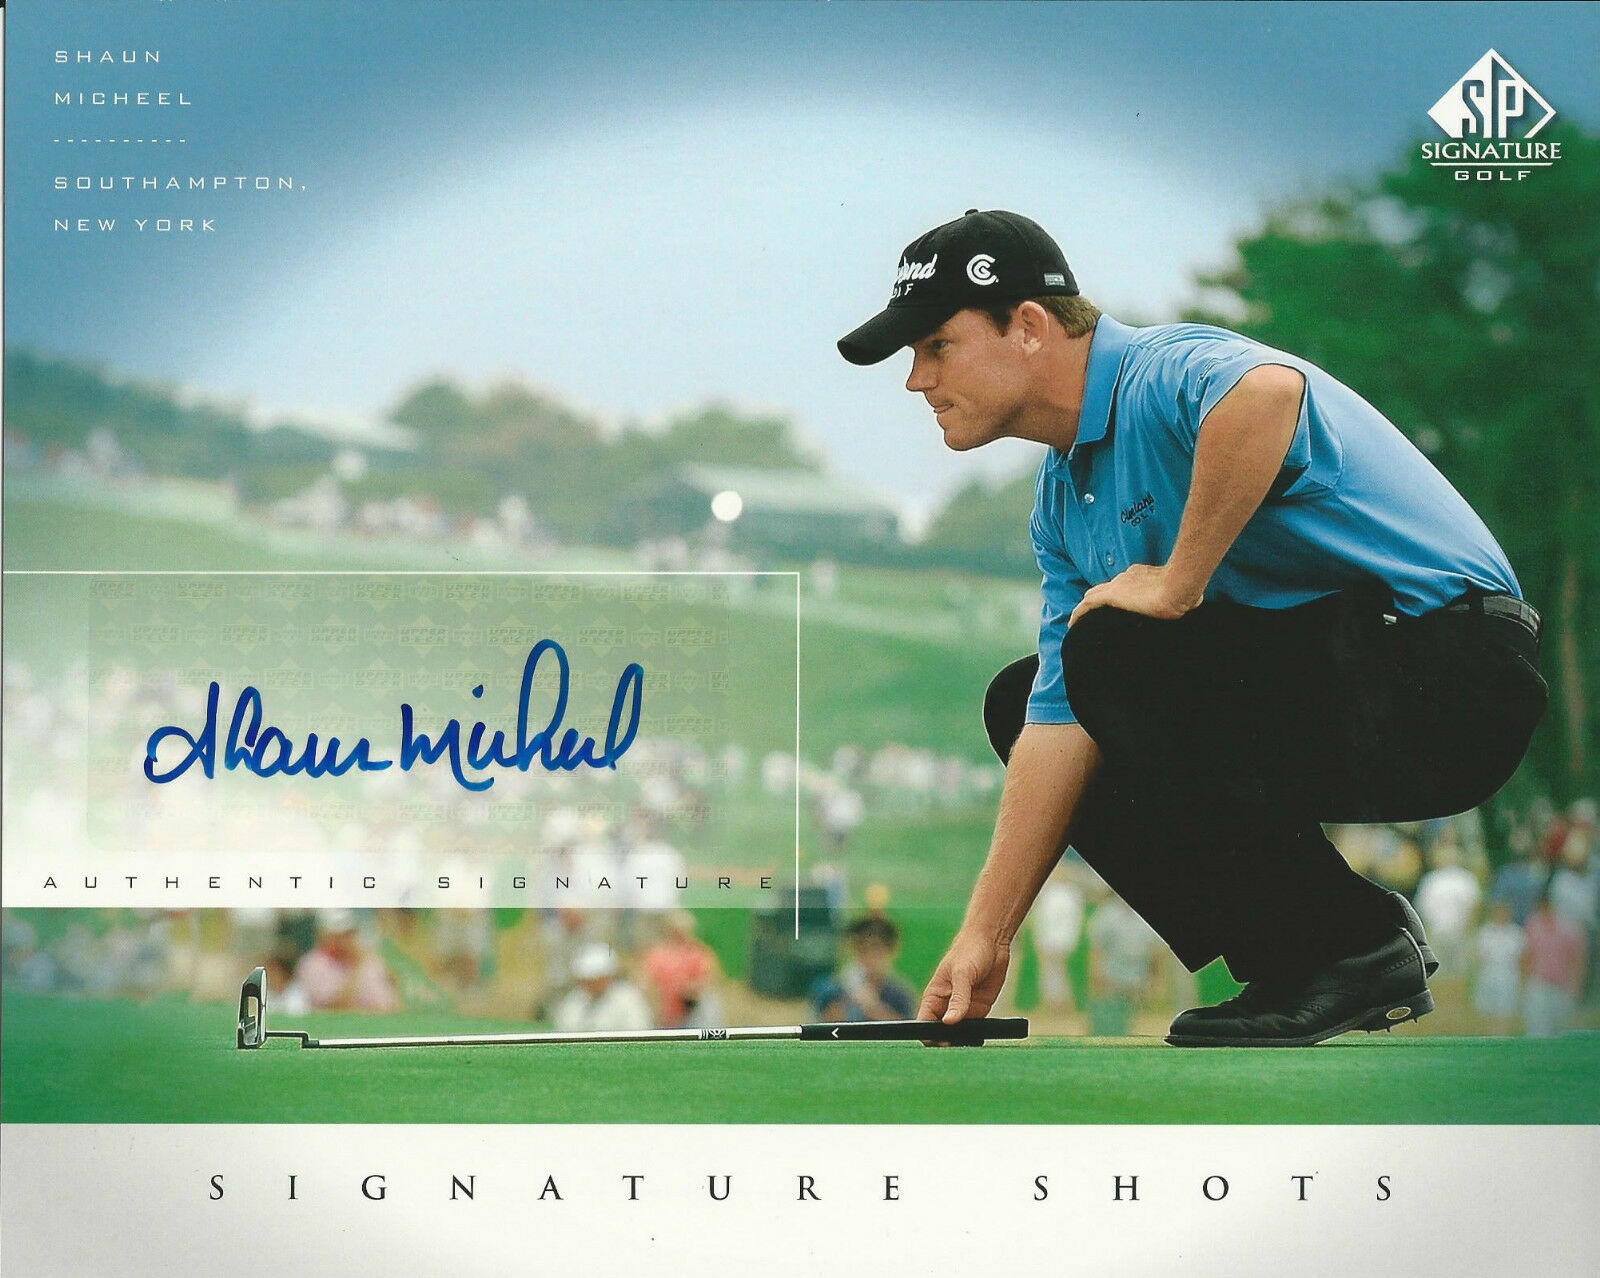 Shaun Micheel Signed SP Signature Shots 8x10 Photo